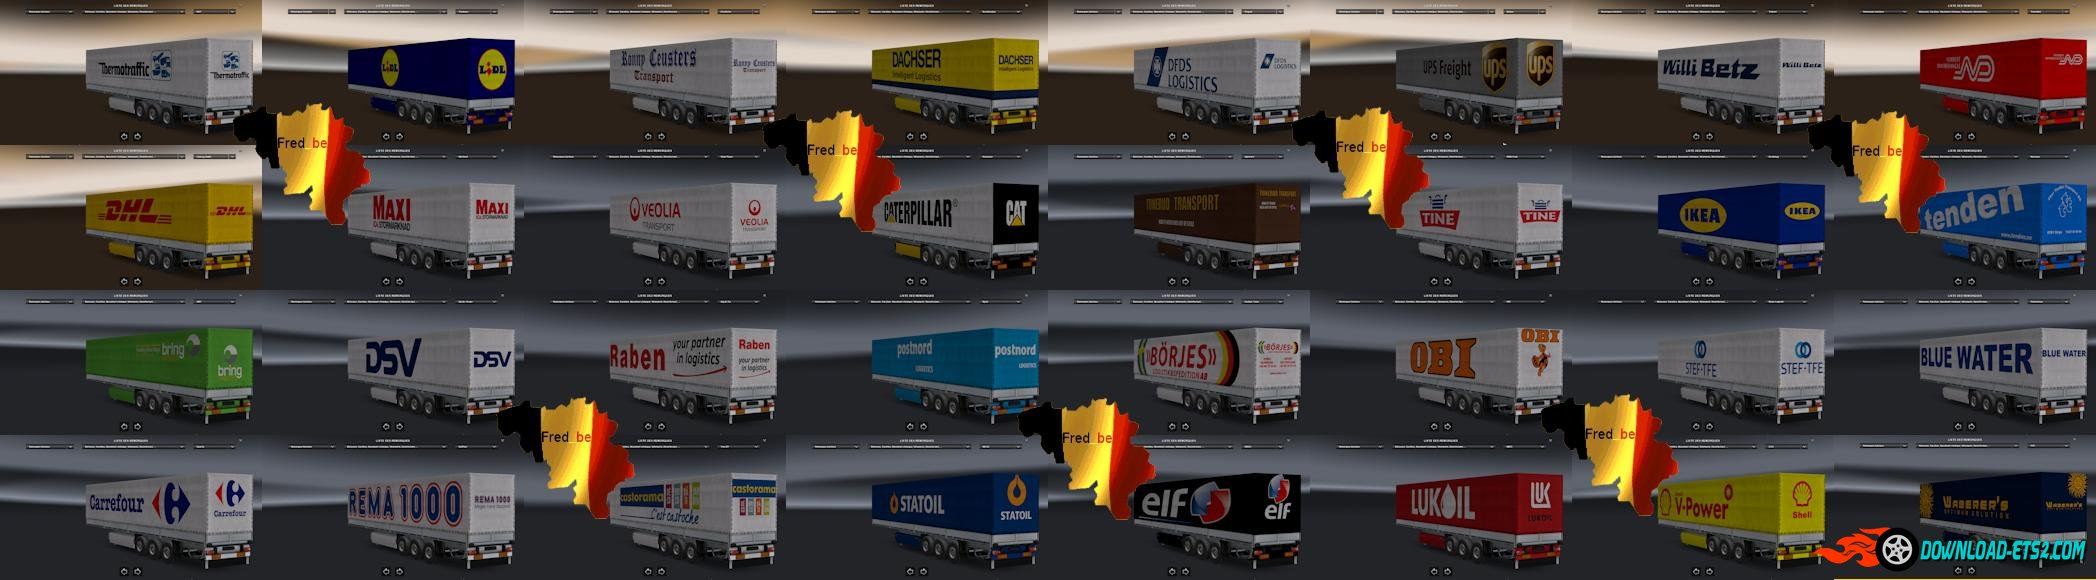 Trailers Pack Universal Standalone [1.22.x]